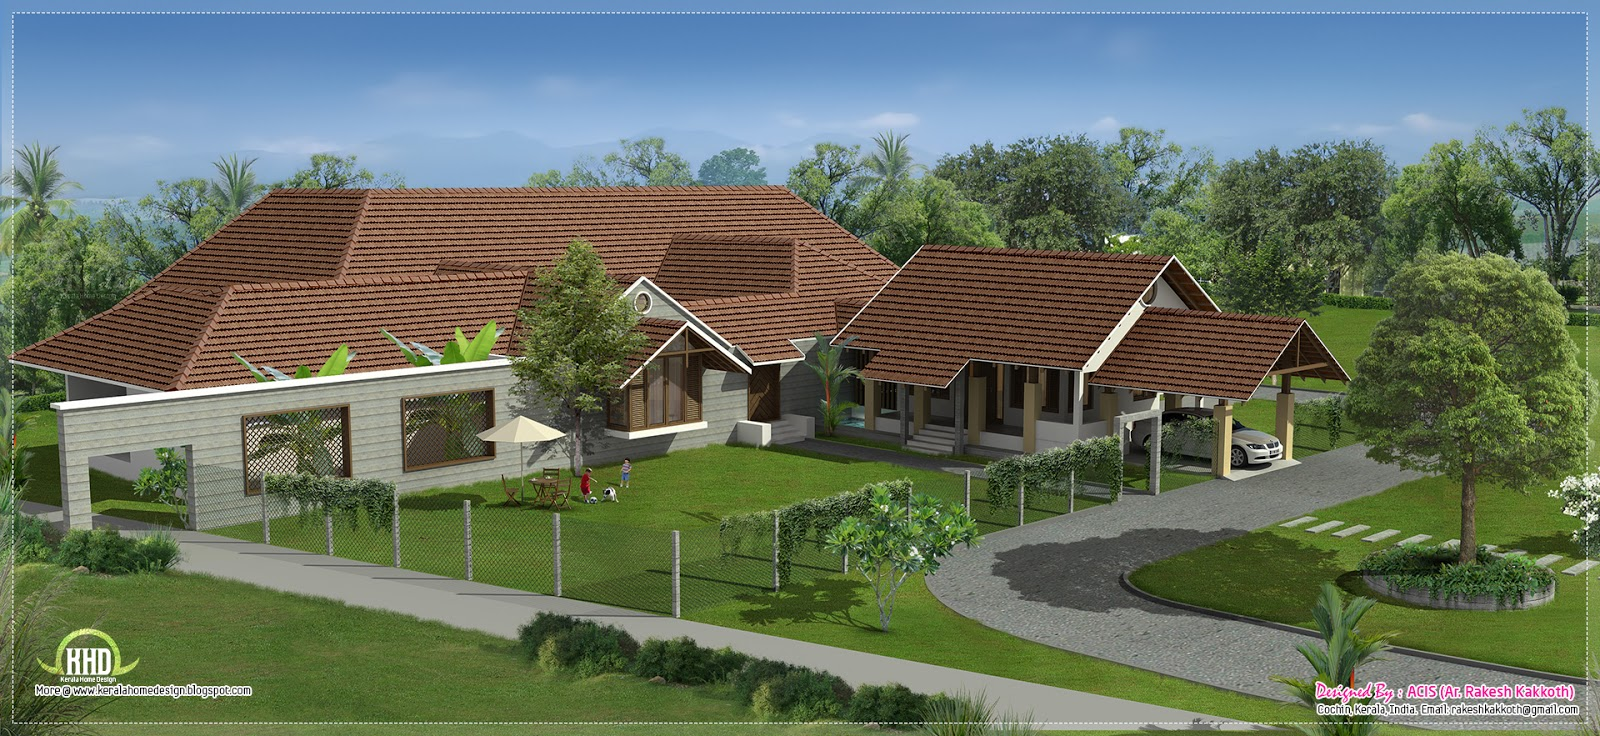 Luxury bungalow exterior design kerala home design and Bungalow house plans